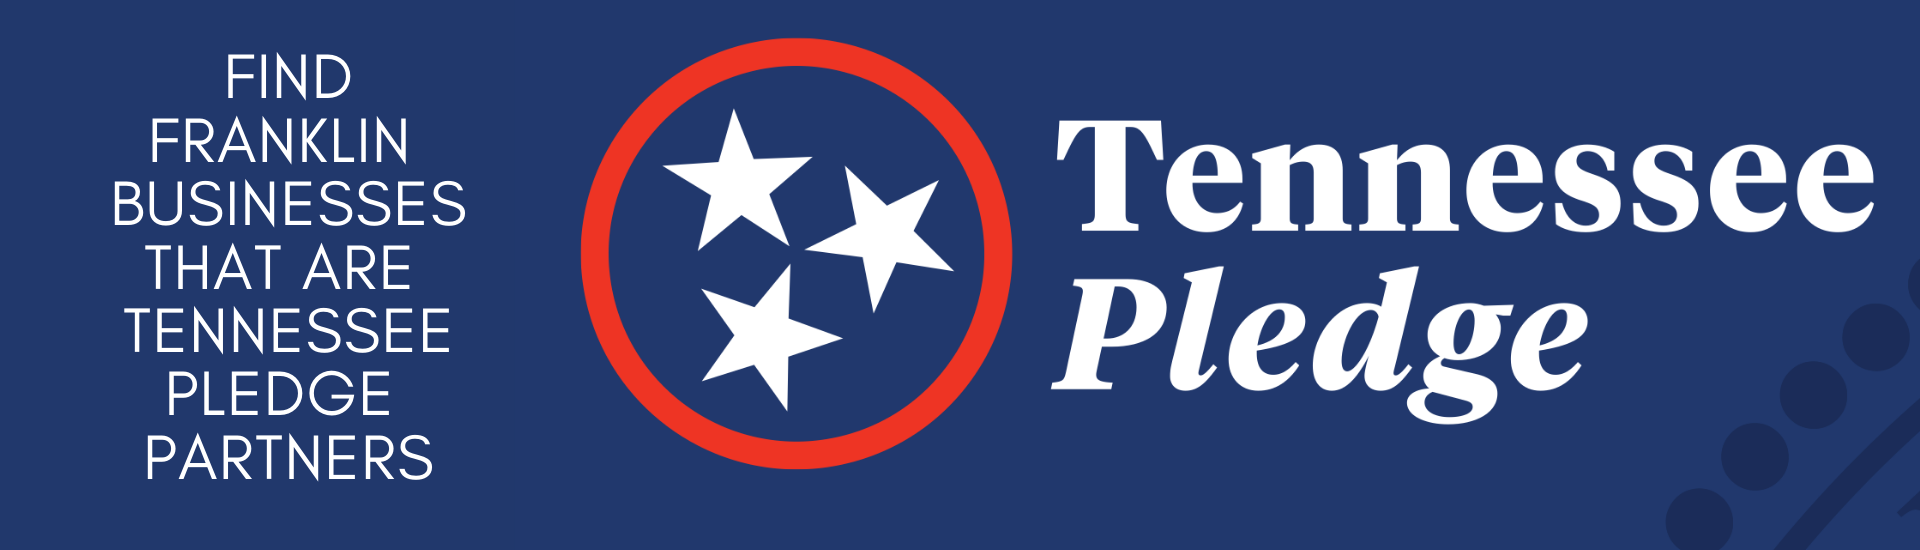 Banner about Tennessee Pledge Partners